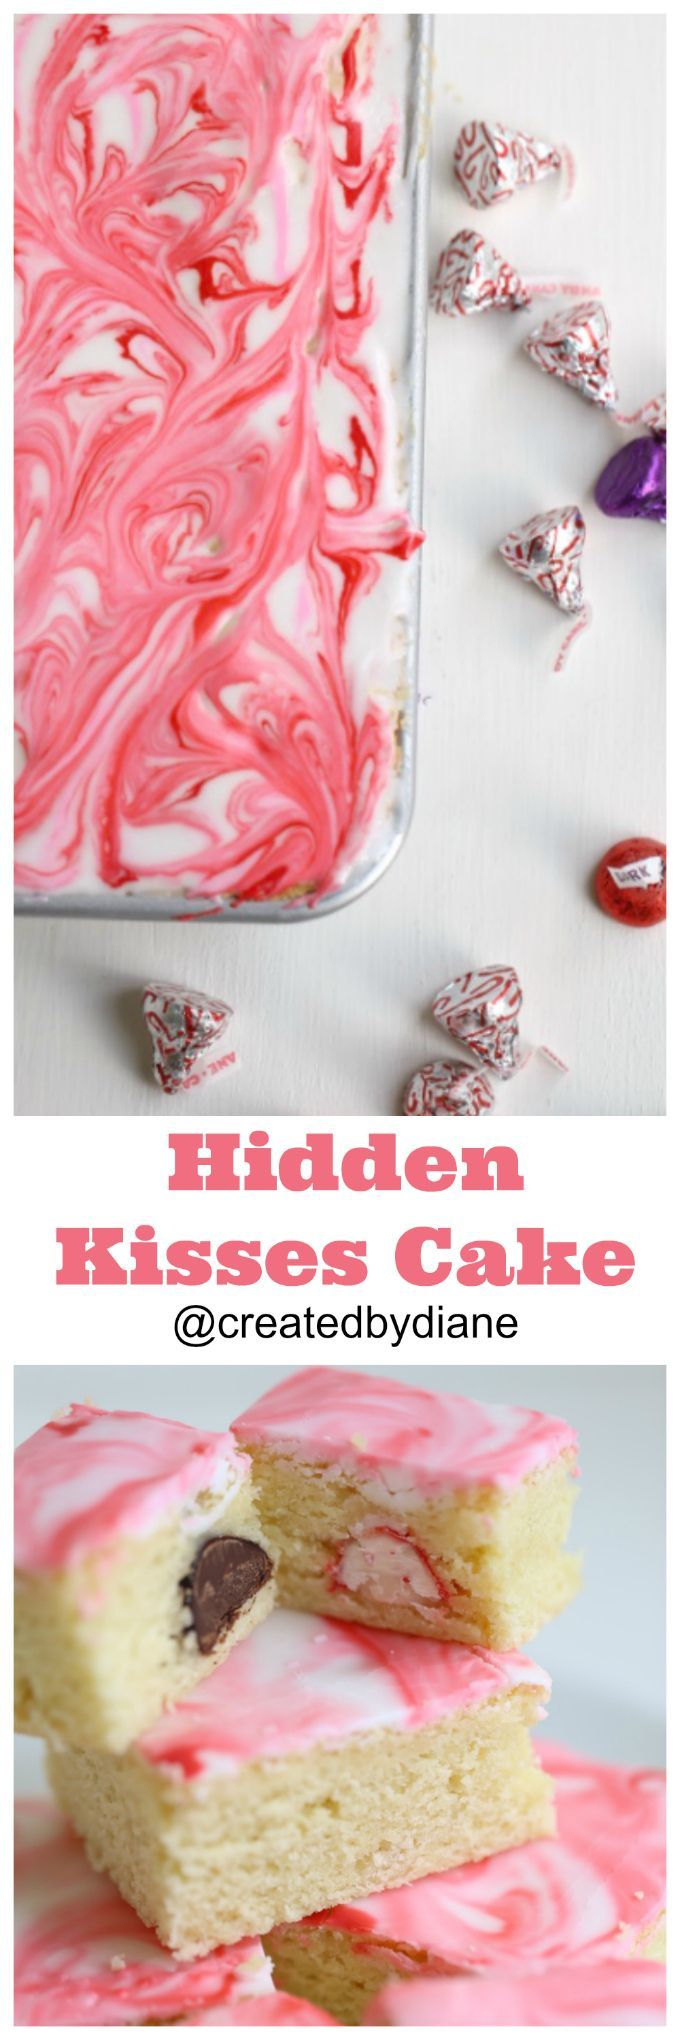 Hersheys kisses are hidden in this delicious cake, use any variety of Hersheys Kisses and make a masterpiece in no time. this is made with dark chocolate and peppermint kisses and there are so many options for it, wait until you see the inside, each bite is filled with a kiss @createdbydiane